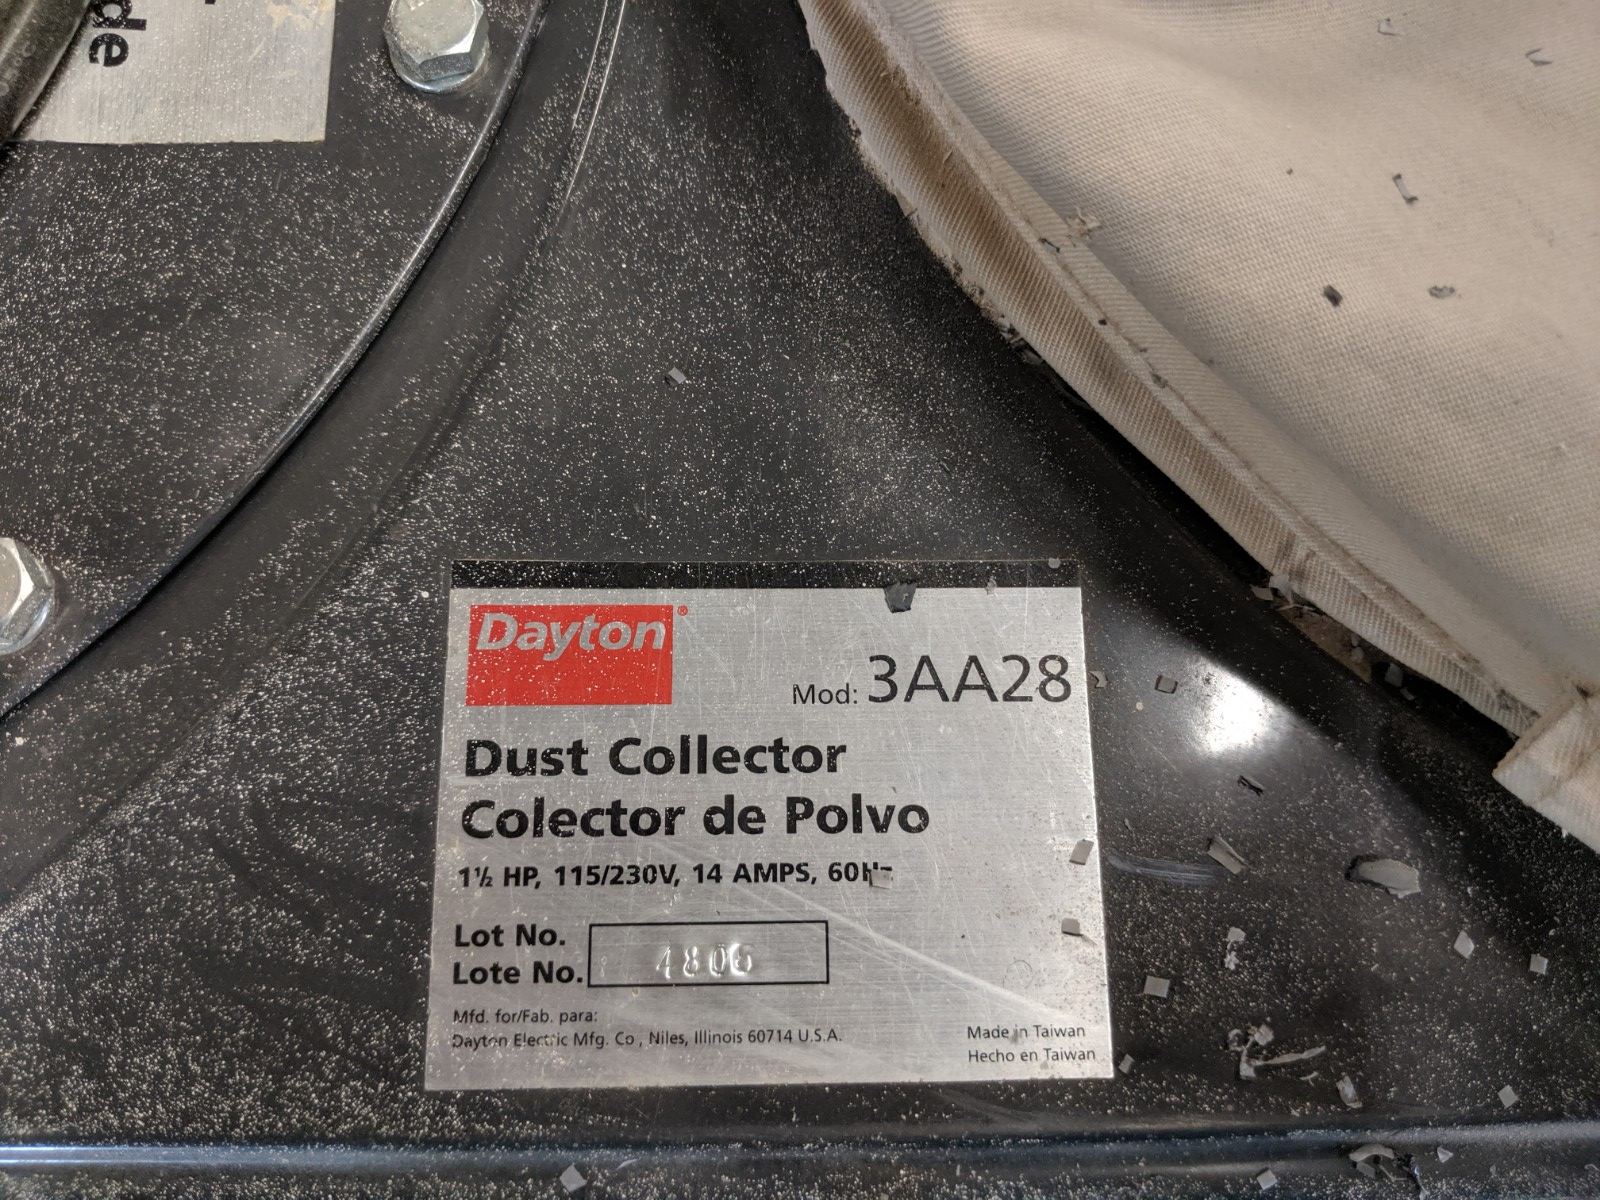 Lot 222 - Dayton Dust Collector